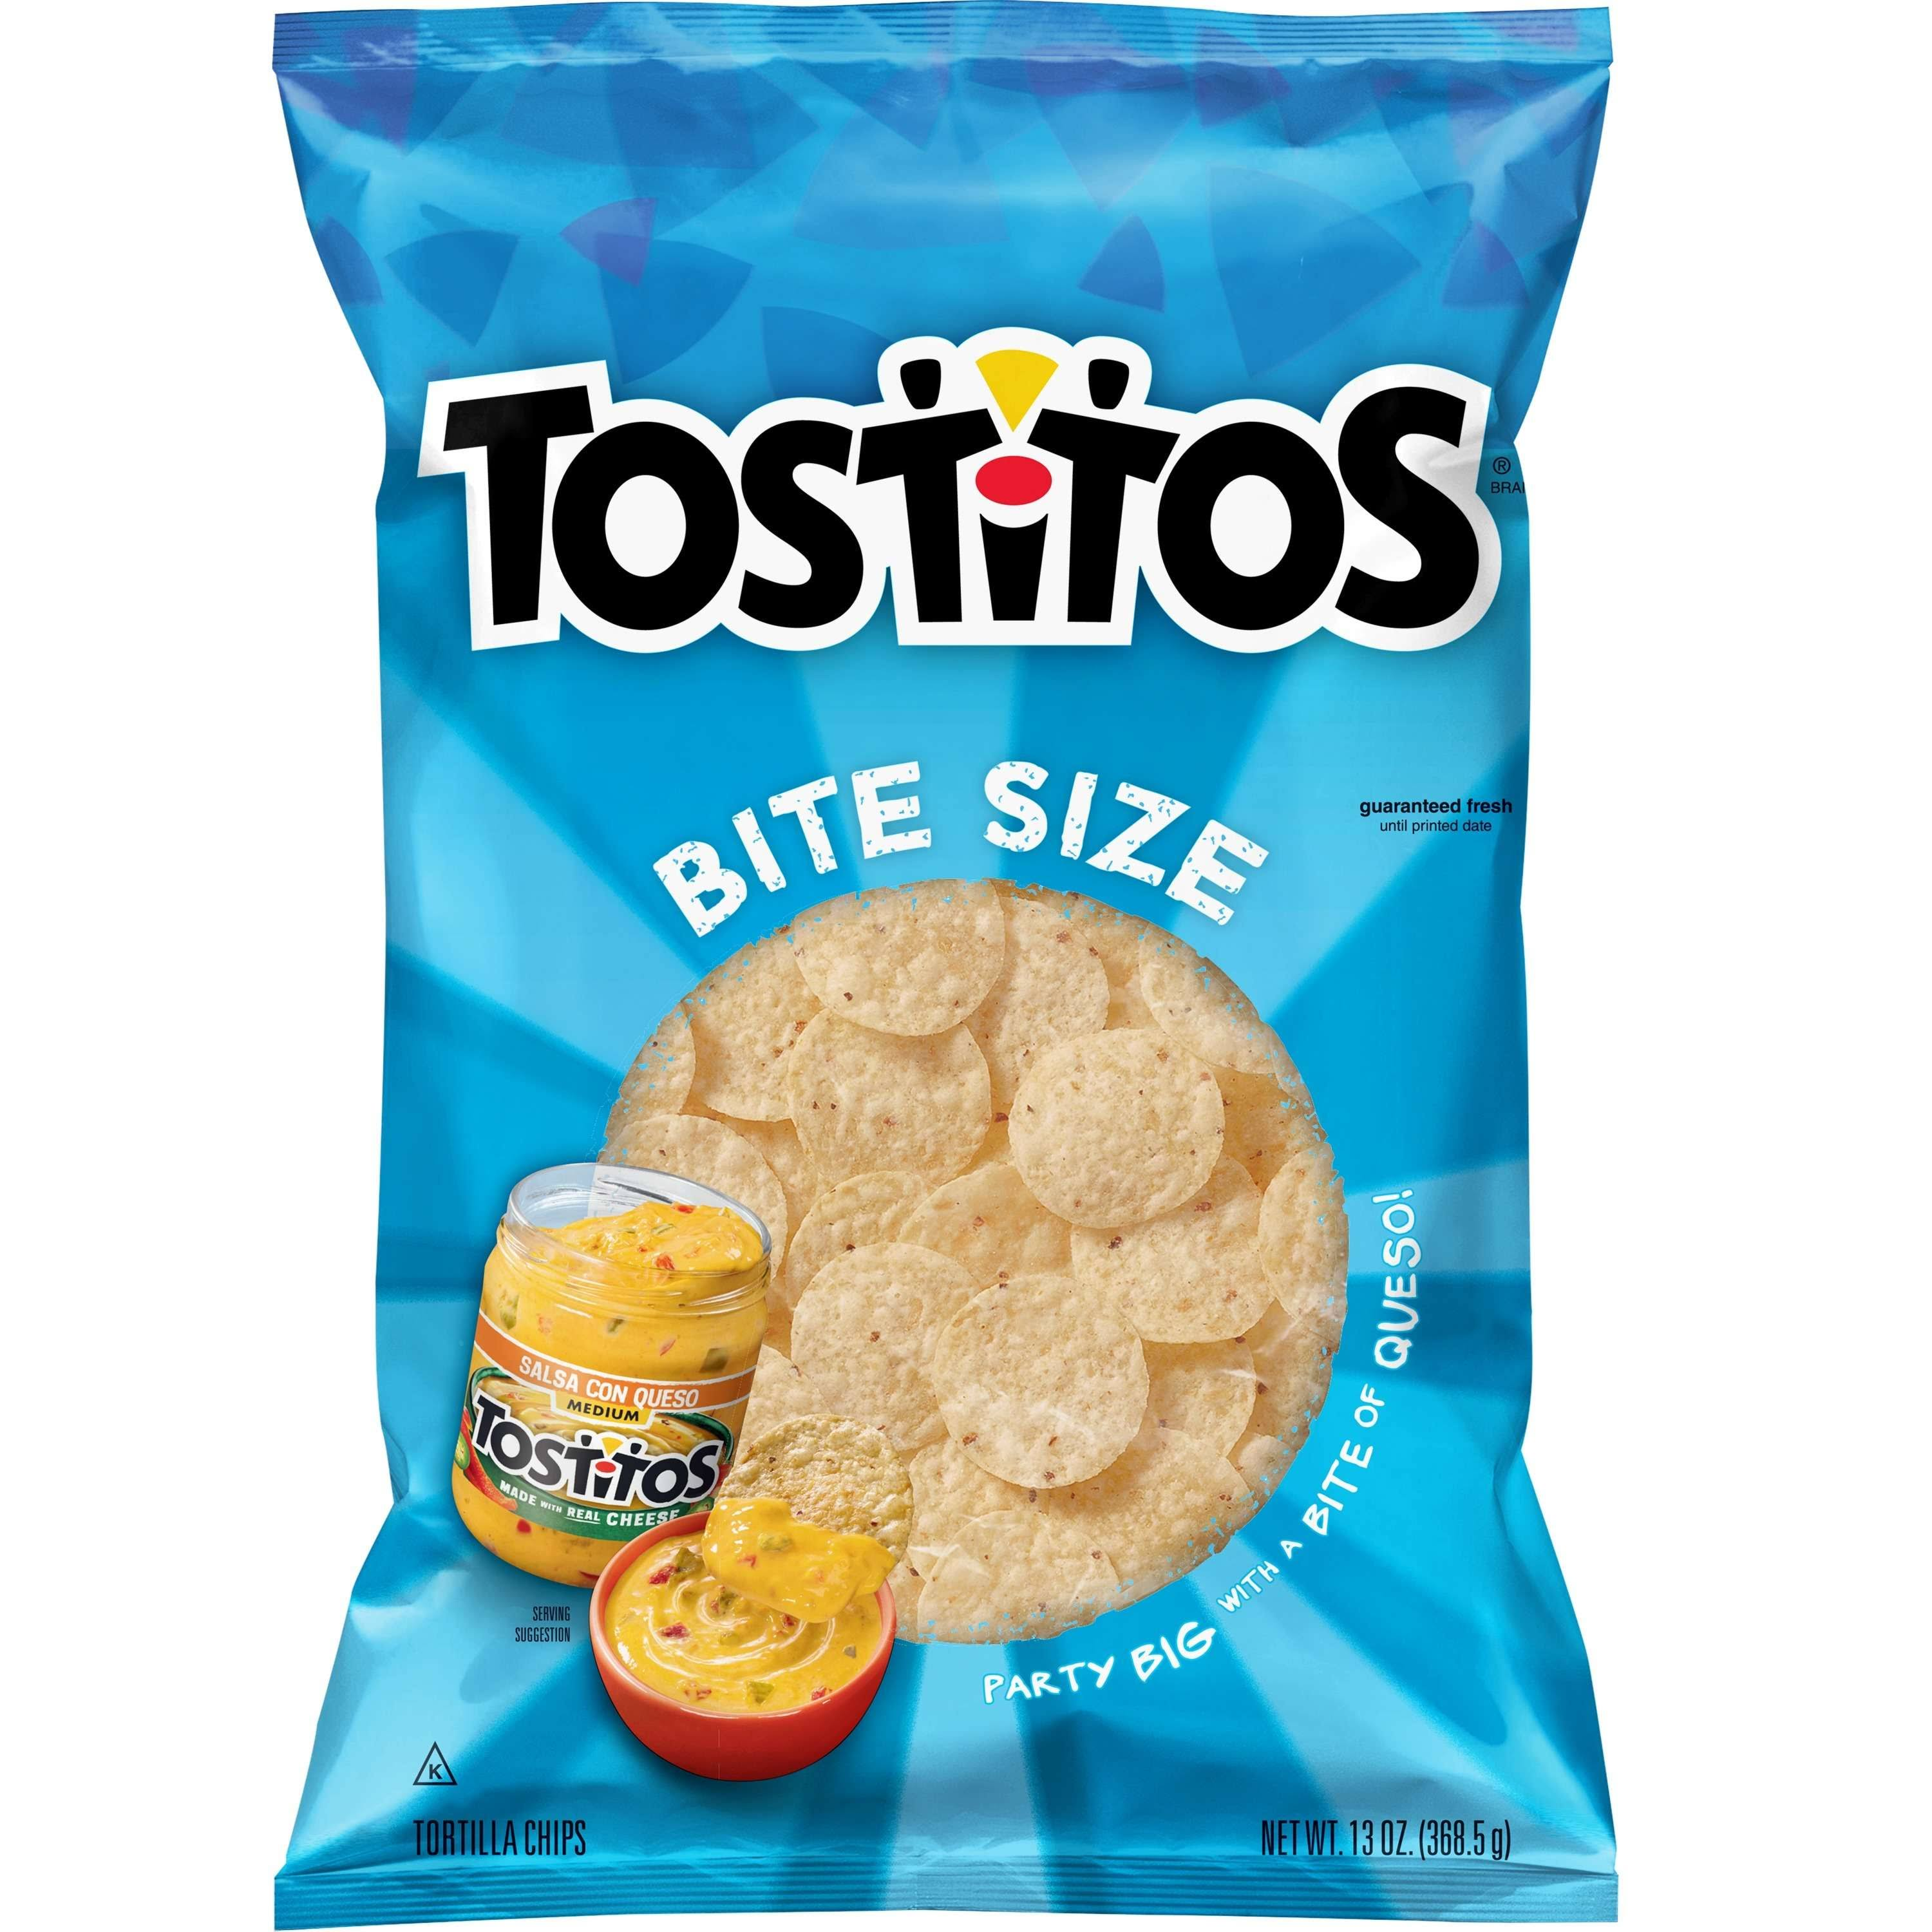 Tostitos Tortilla Chips - Bite Size